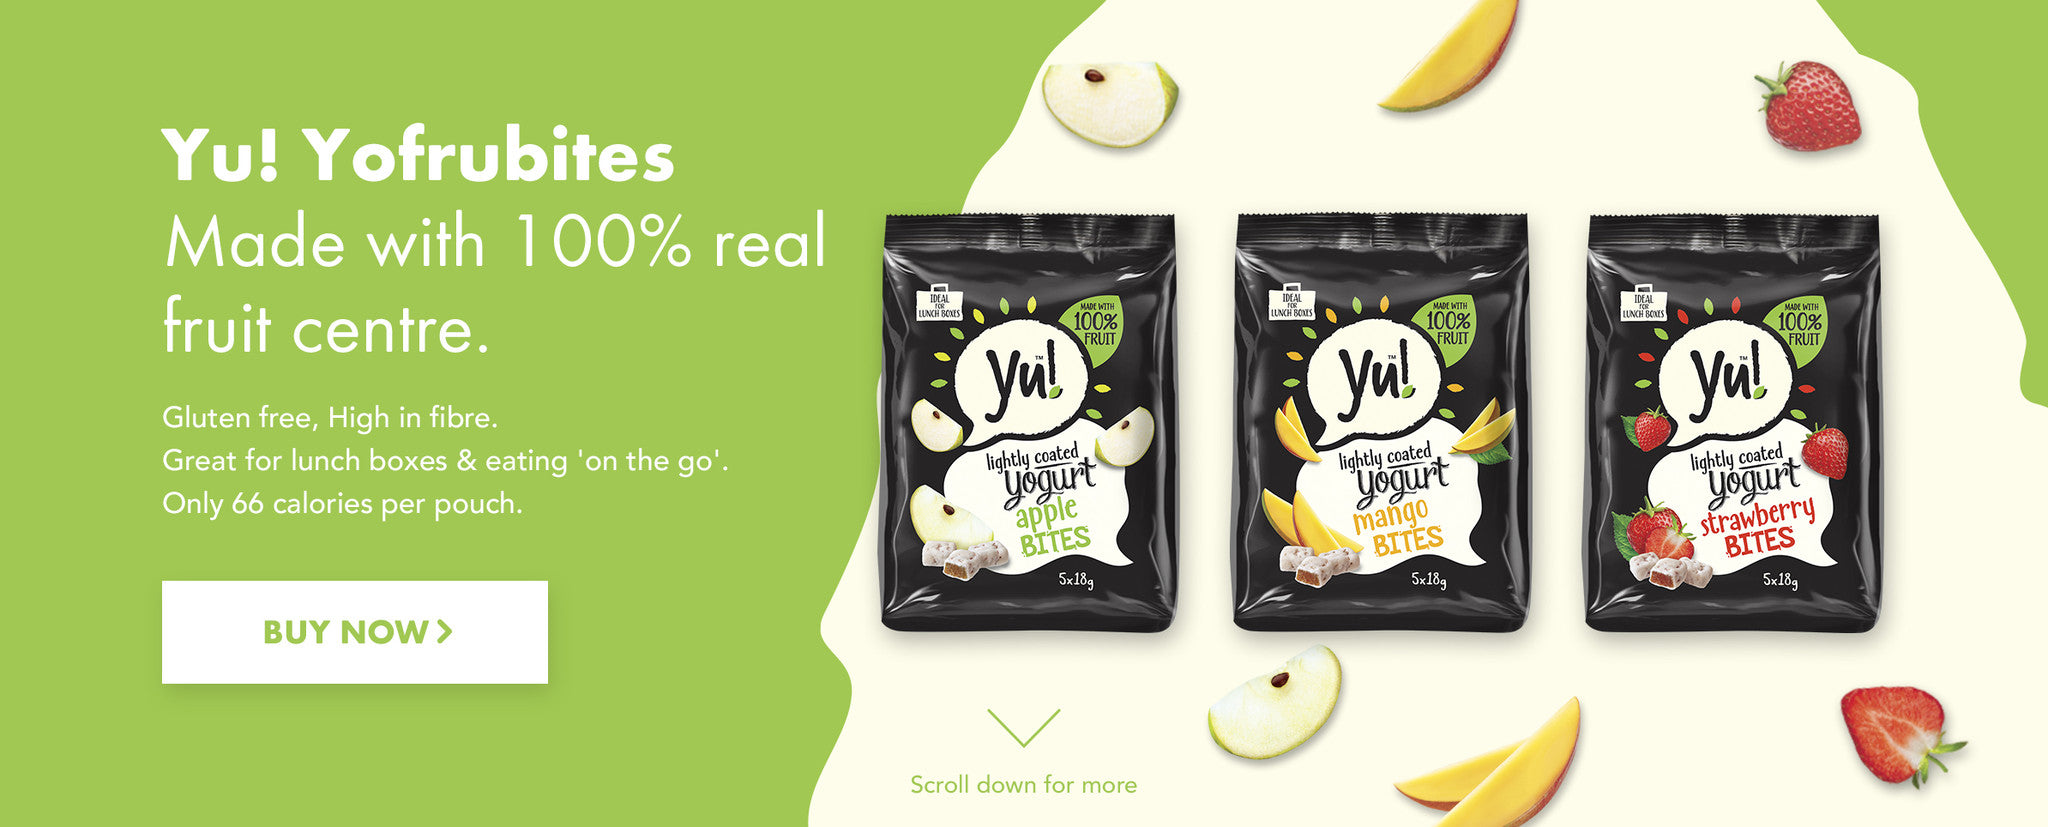 Yu! Yofrubites. 100% real fruit centre. Gluten free & high in fibre. Only 66 Calories per pouch.